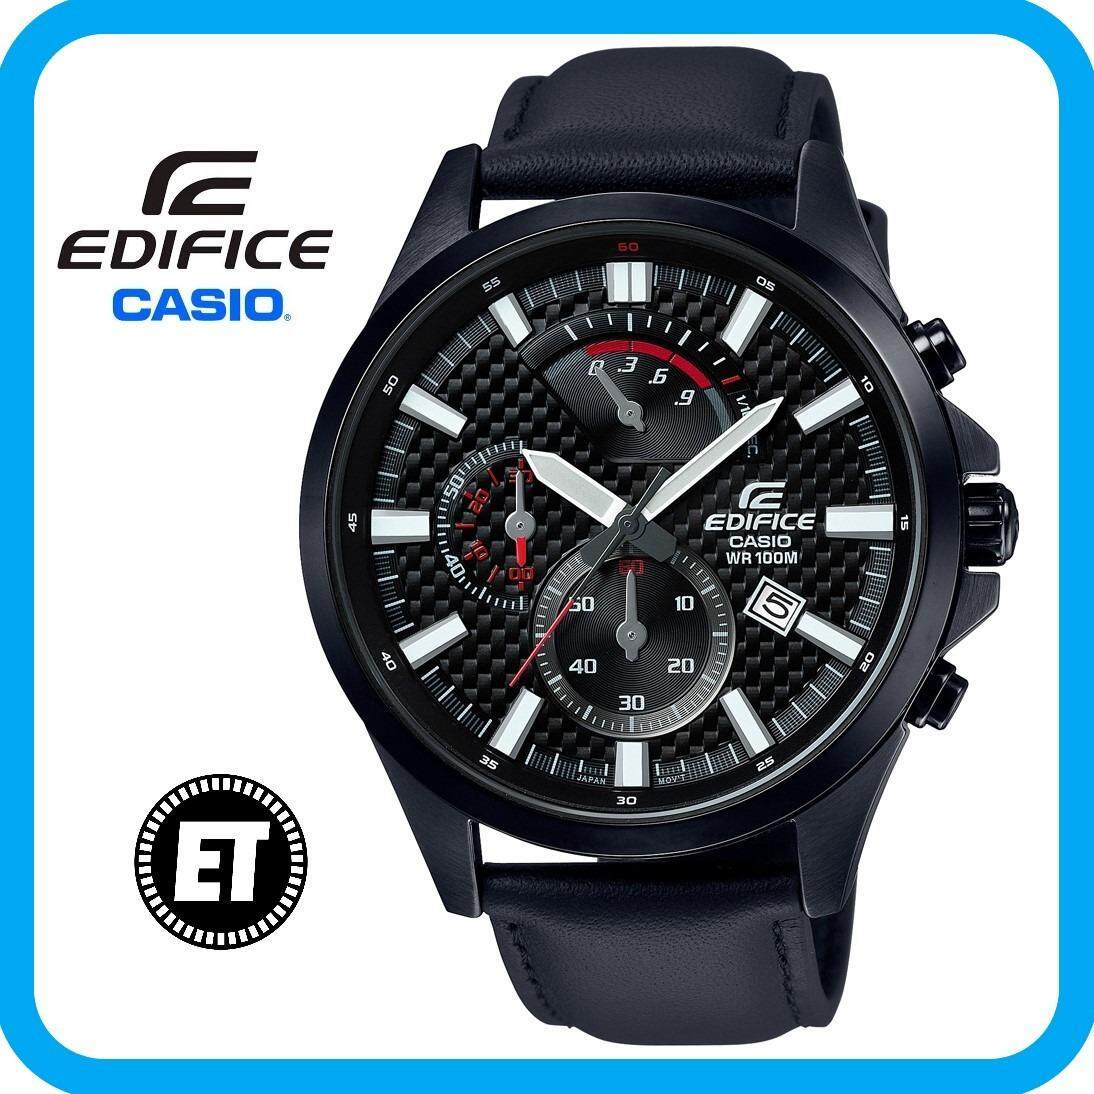 Casio Edifice Watches Price In Malaysia Best Sandal Kulit Pria Rc237 2 Years Warranty Original Efv 530bl 1av Chronograph Mens Watch